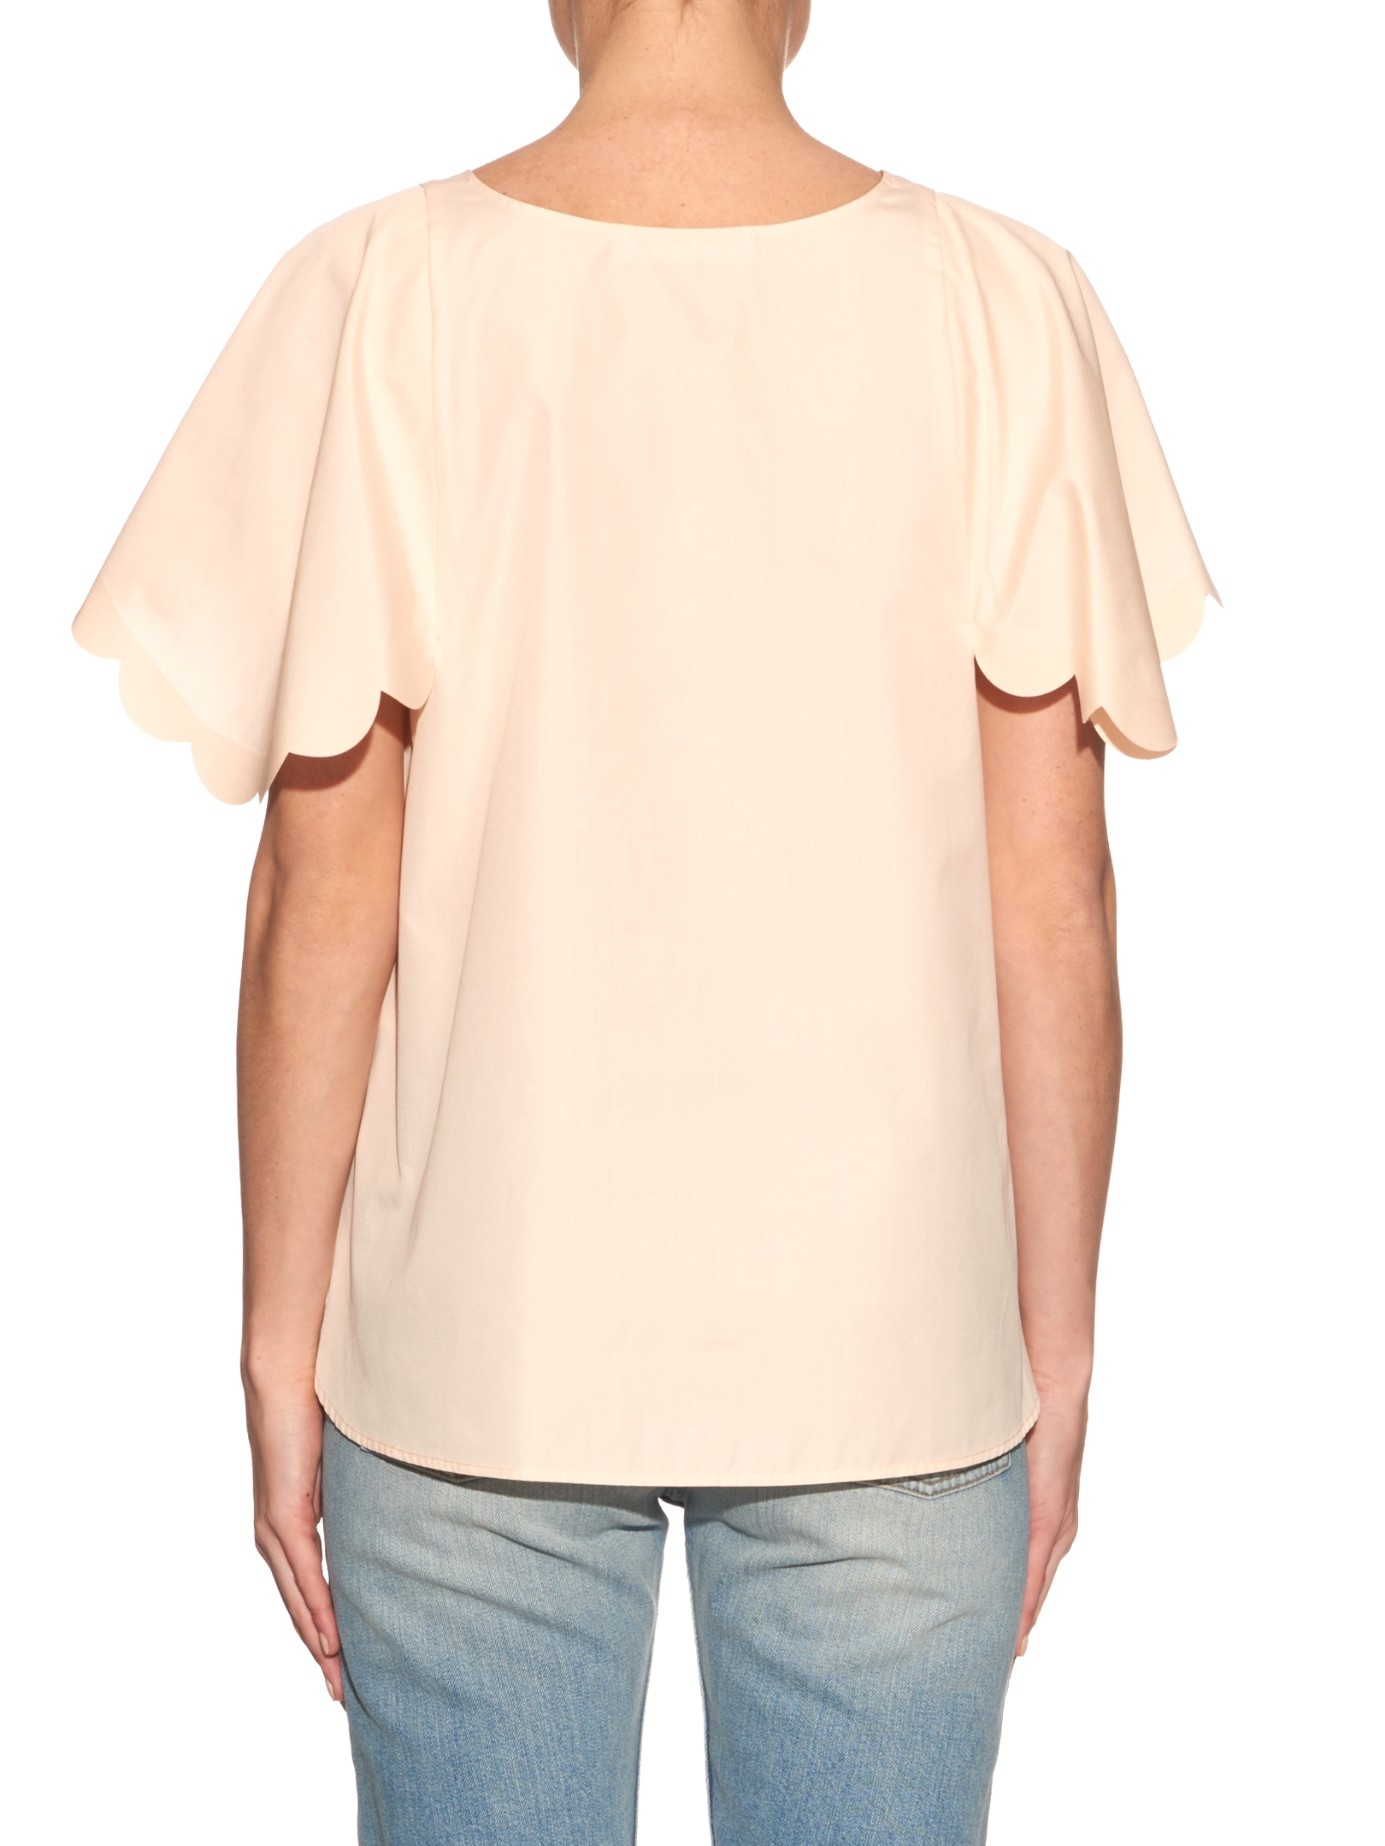 See by Chloé Embellished Oversize Top Choice Outlet Finishline Huge Surprise Cheap Online LbKjojv2I